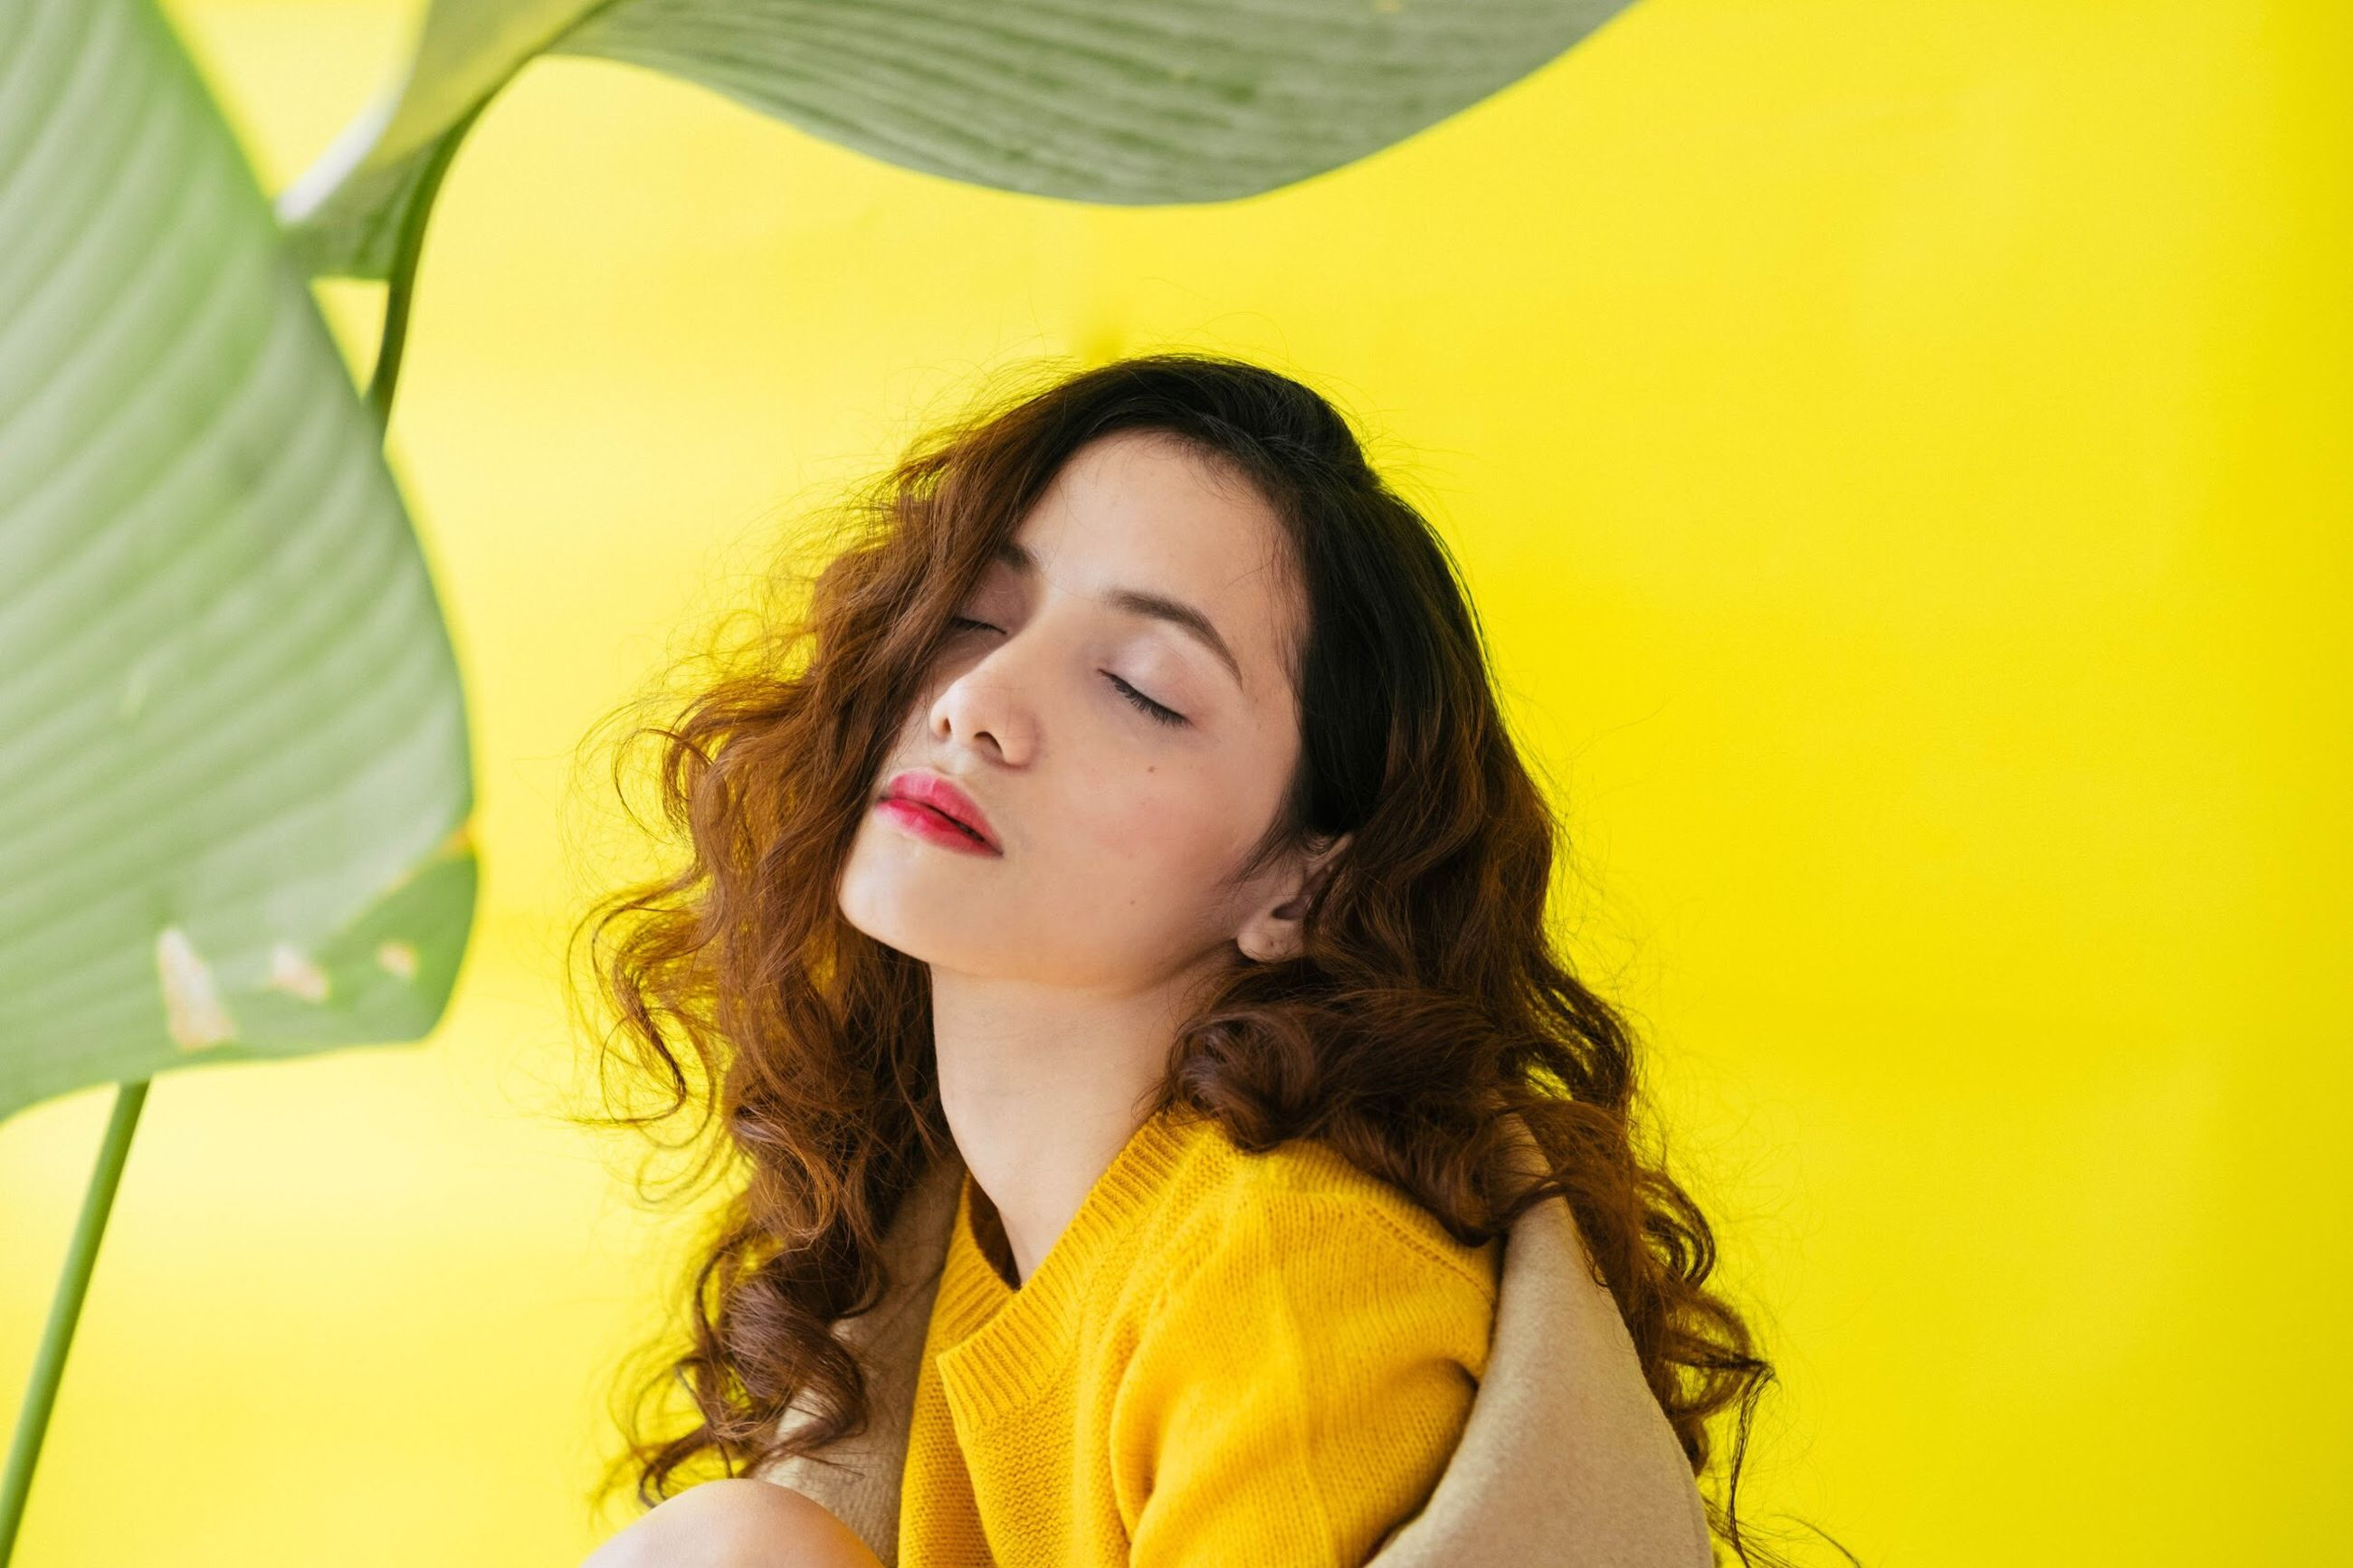 yellow, one person, brown hair, eyes closed, headshot, yellow background, one young woman only, young adult, colored background, one woman only, beauty, day, beautiful people, portrait, only women, beautiful woman, close-up, outdoors, people, young women, adults only, adult